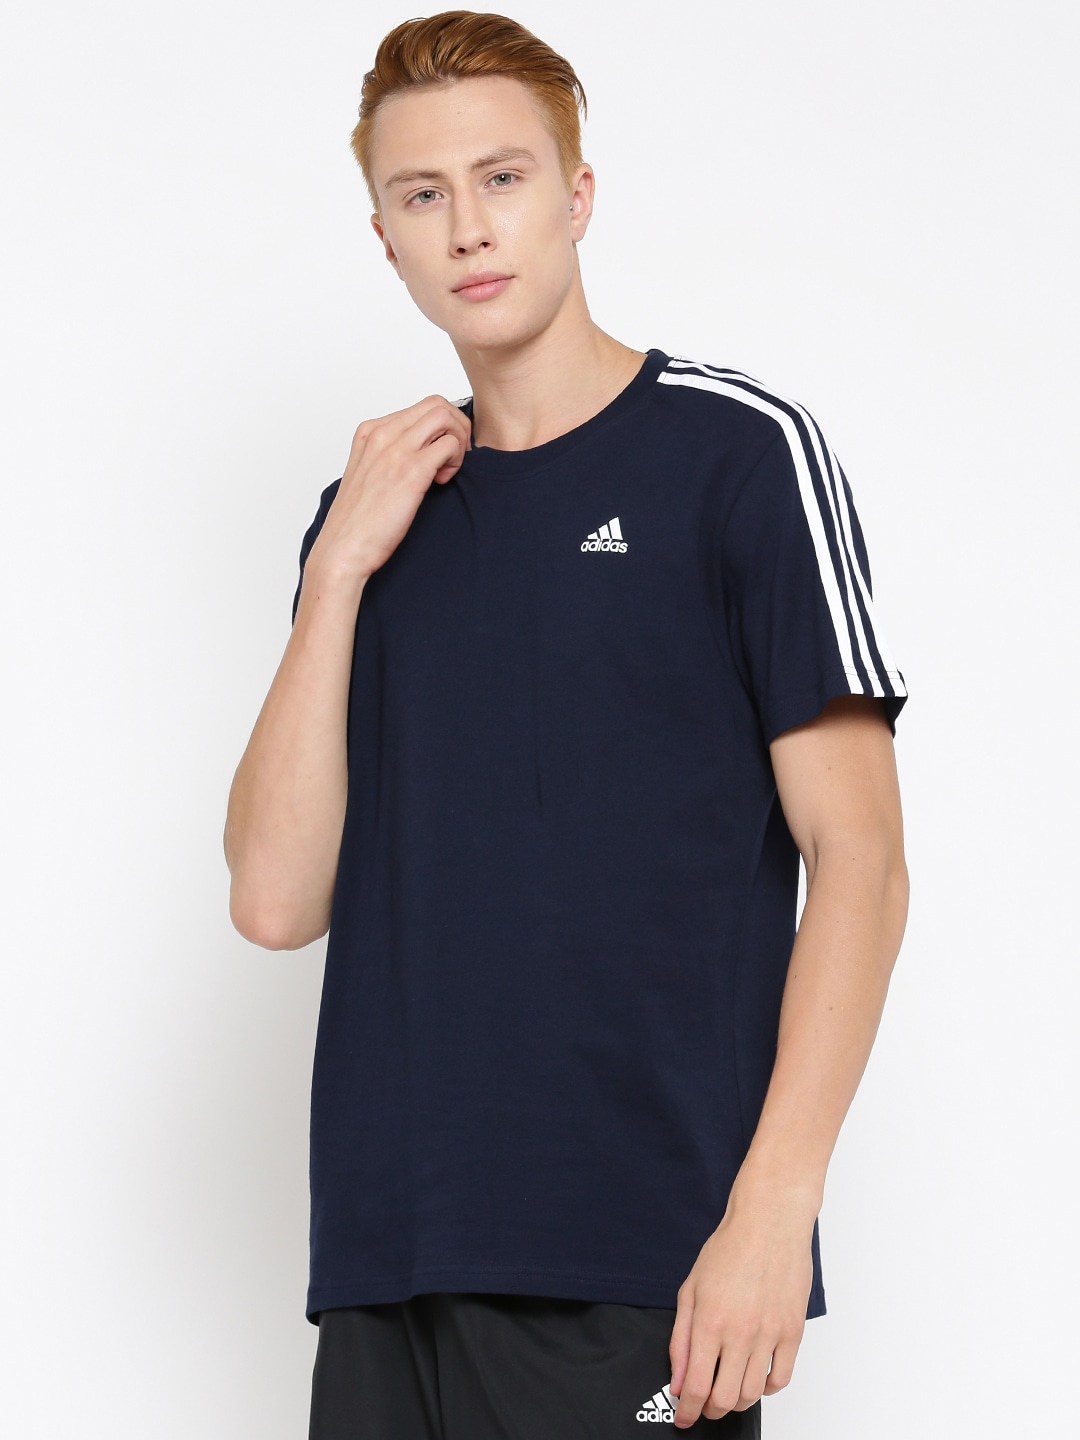 Design your own t shirt india cash on delivery - Adidas Men Navy Blue Ess 3s Solid Round Neck T Shirt